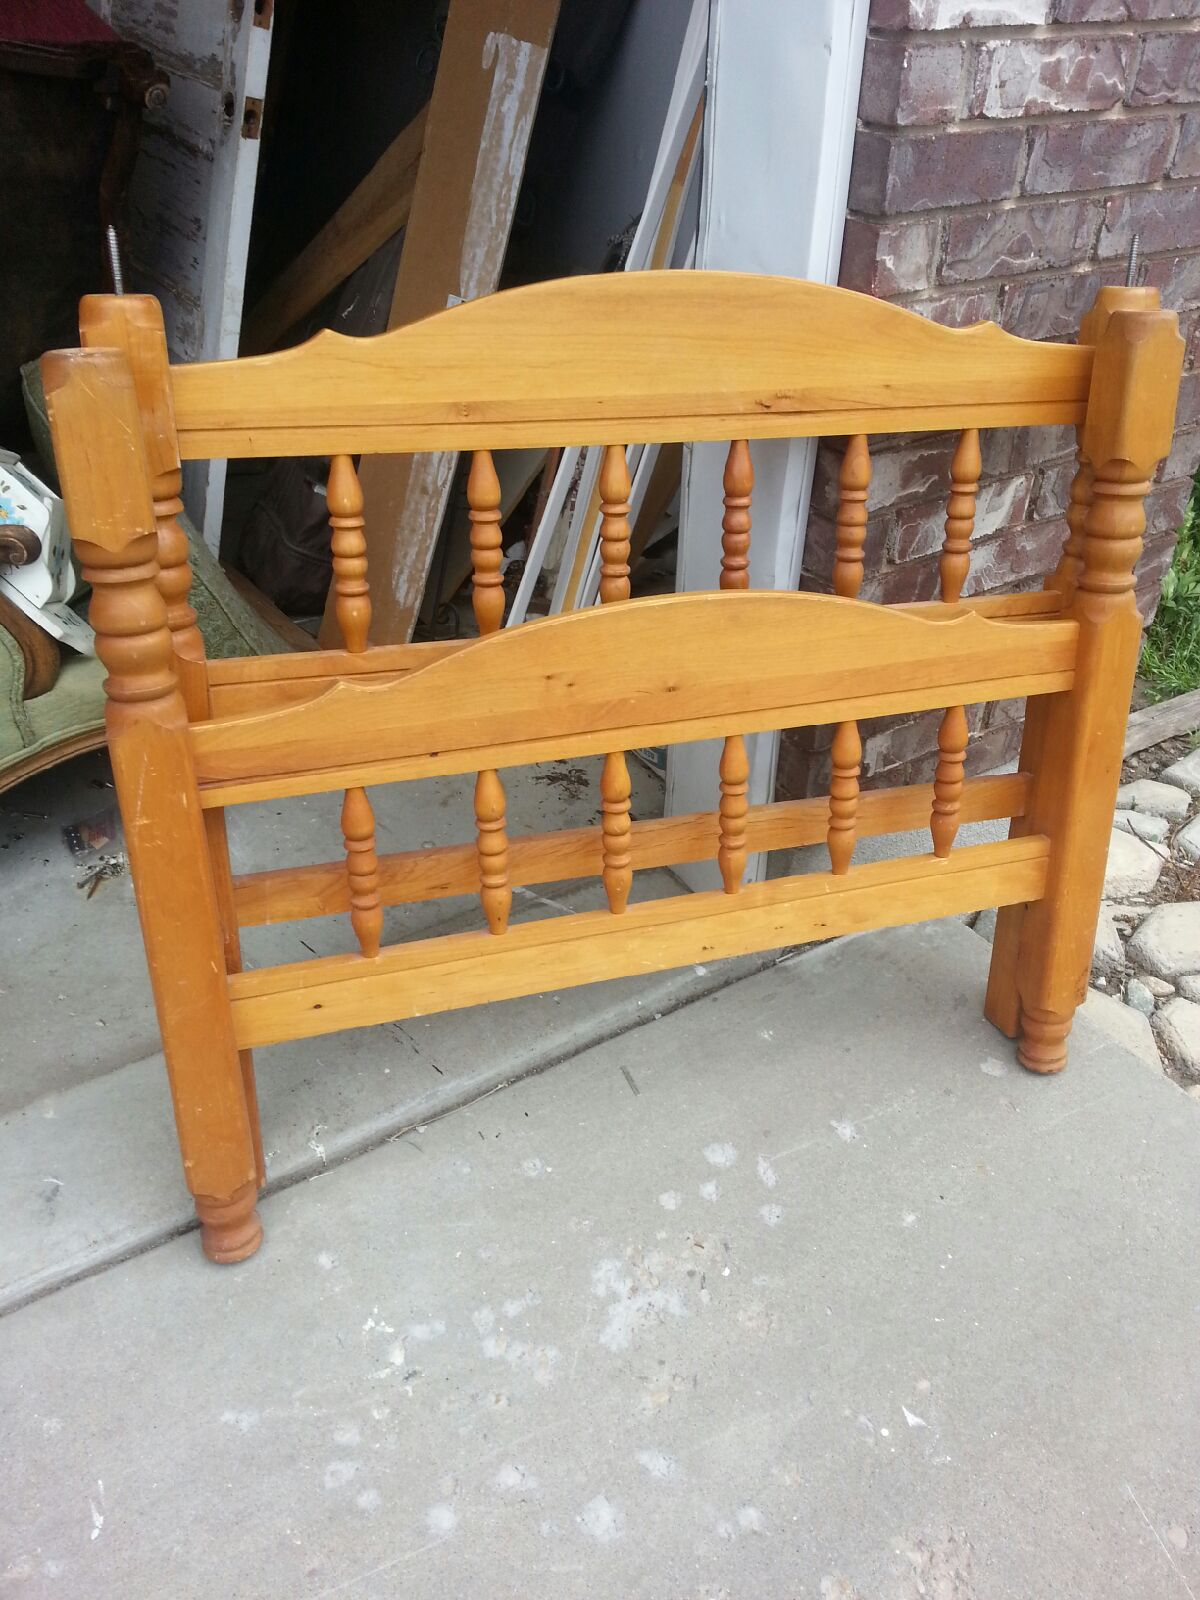 Bench By Bed: Twin Bed Frame Turned Bench!